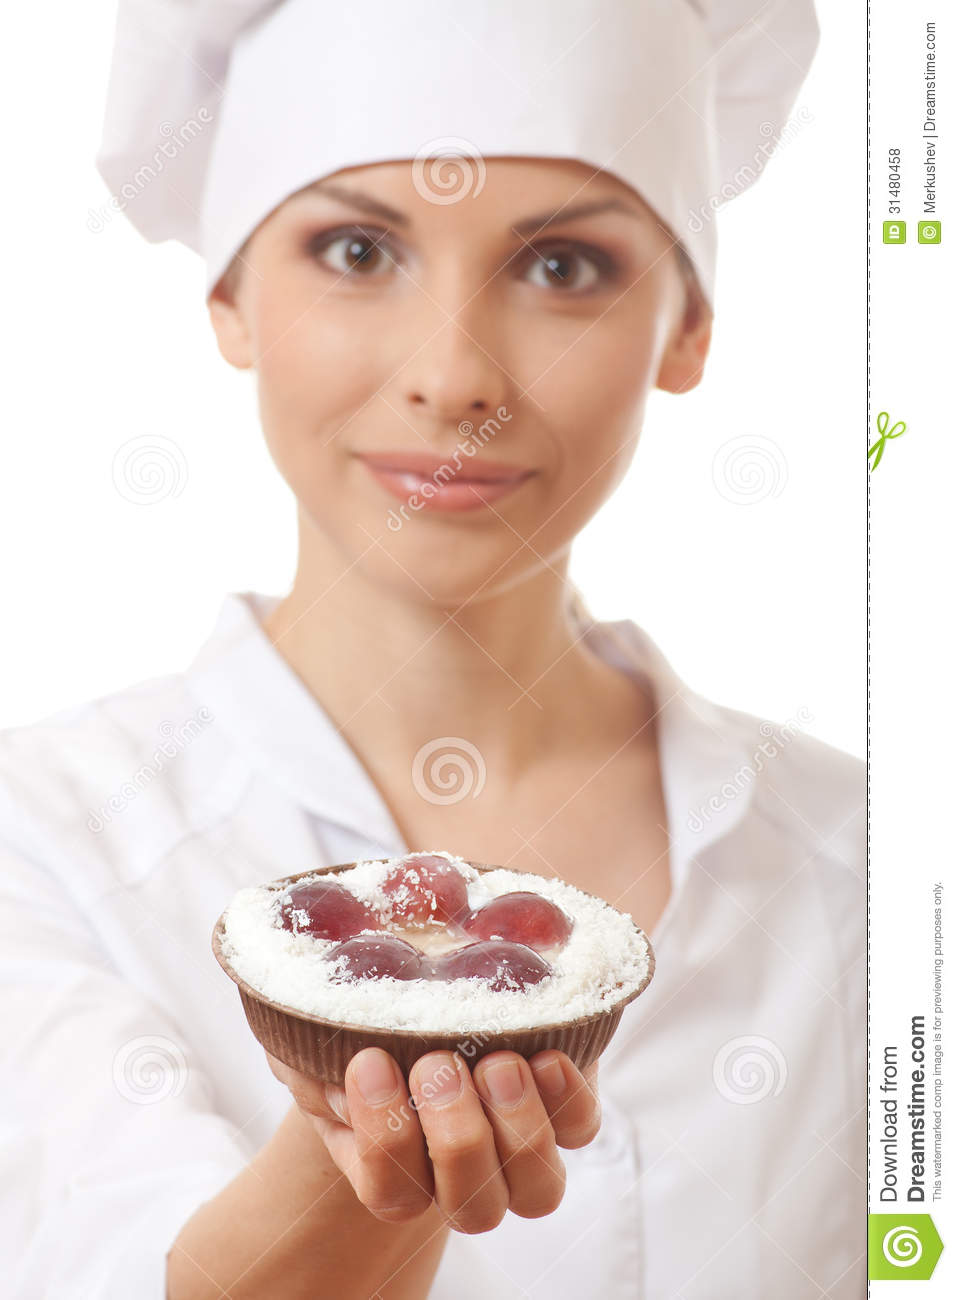 Woman Cook Holding Cake Stock Photo Image Of Cooking